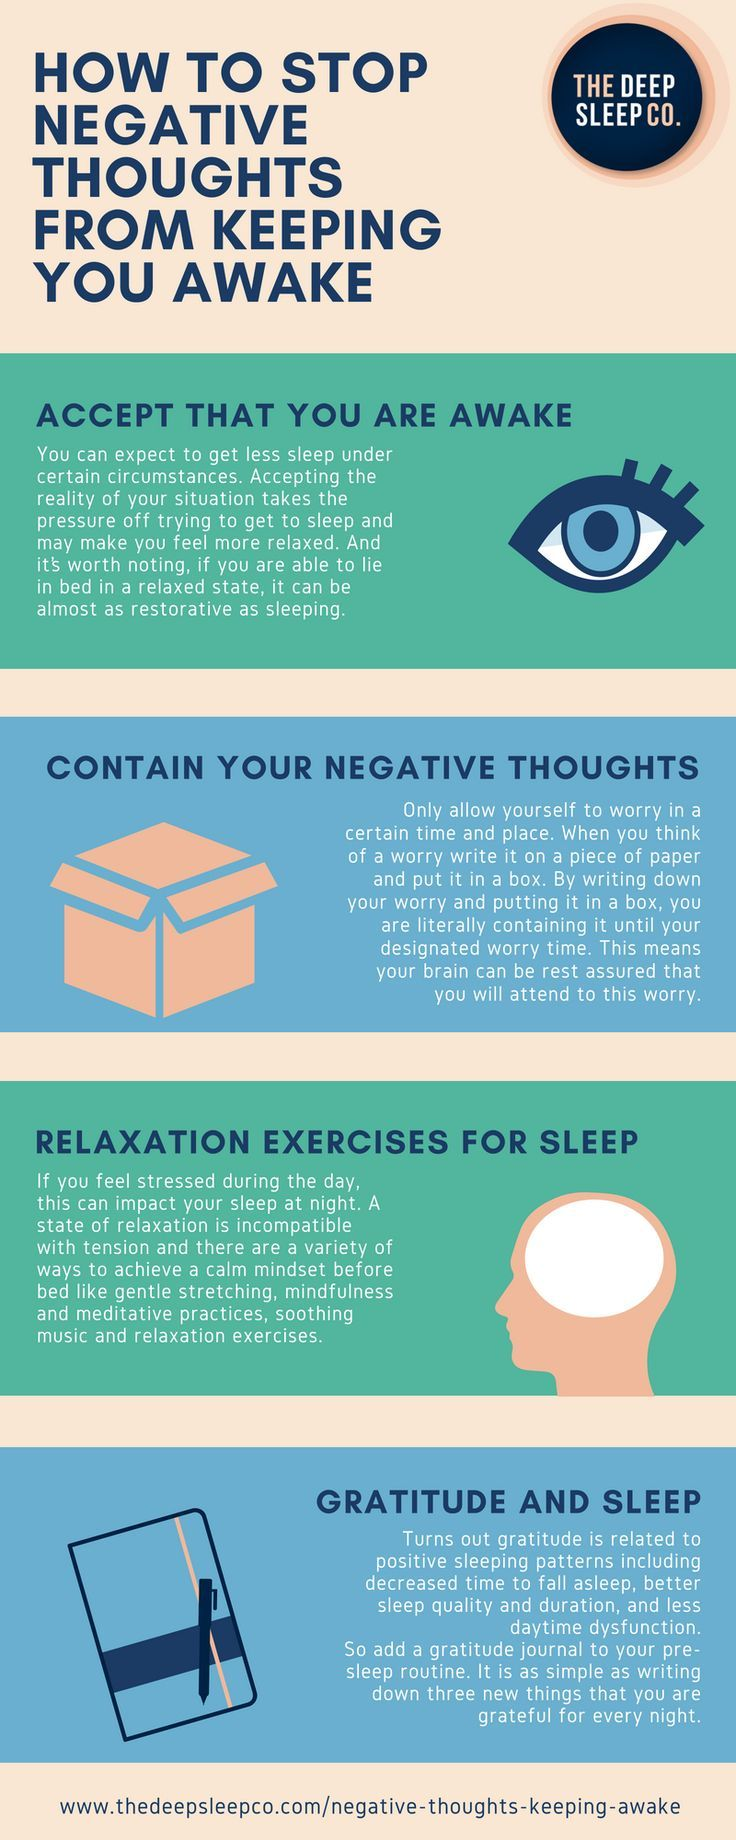 How To Stop Negative Thoughts From Keeping You Awake At Night Natural Sleep Remedies Sleep Remedies Negative Thoughts